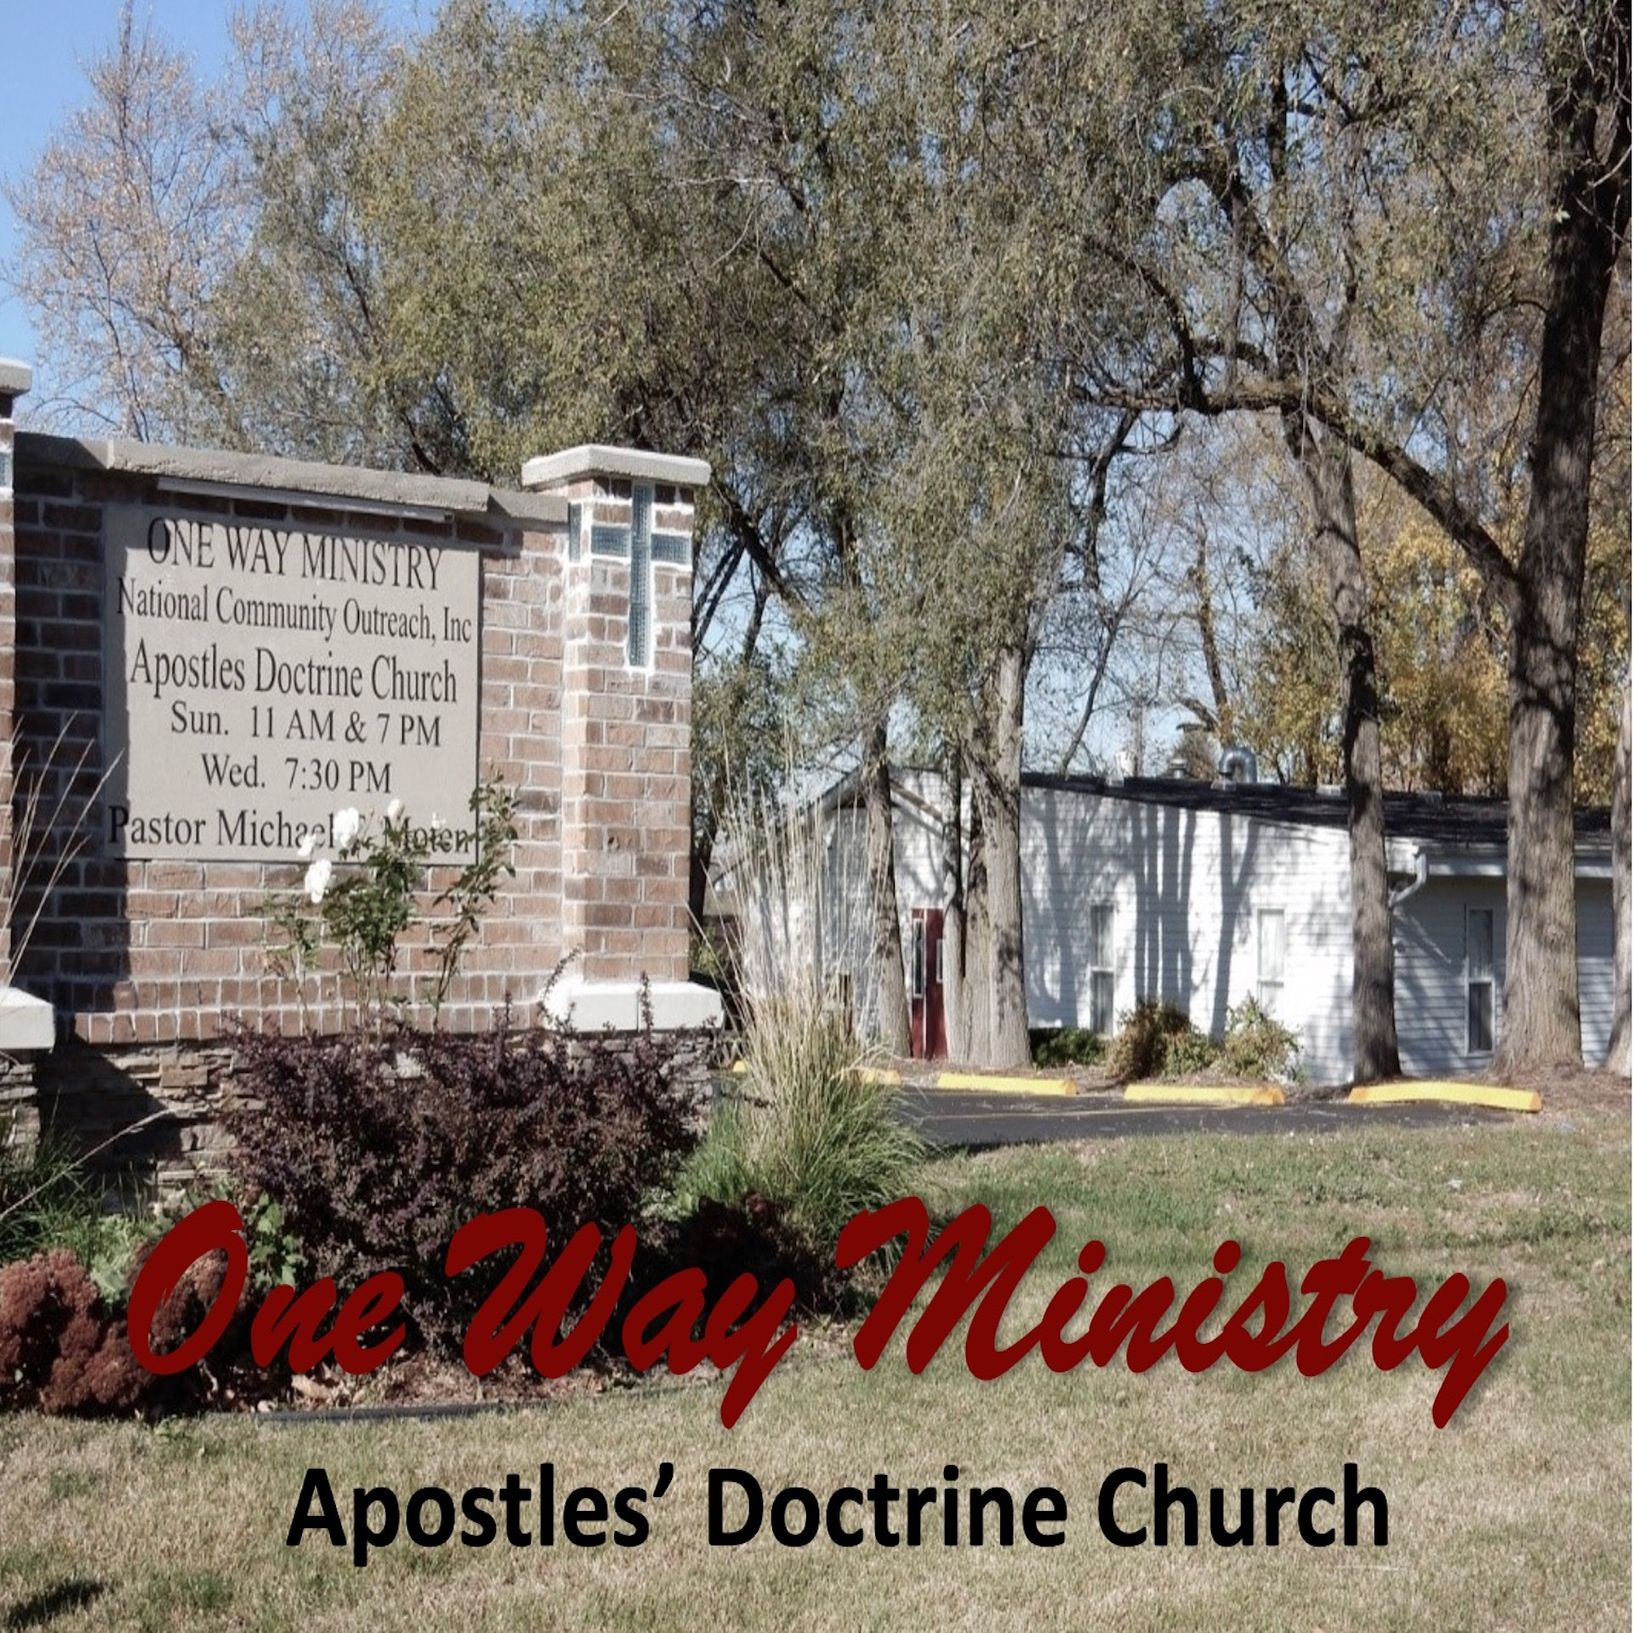 One Way Ministry Apostles' Doctrine Church